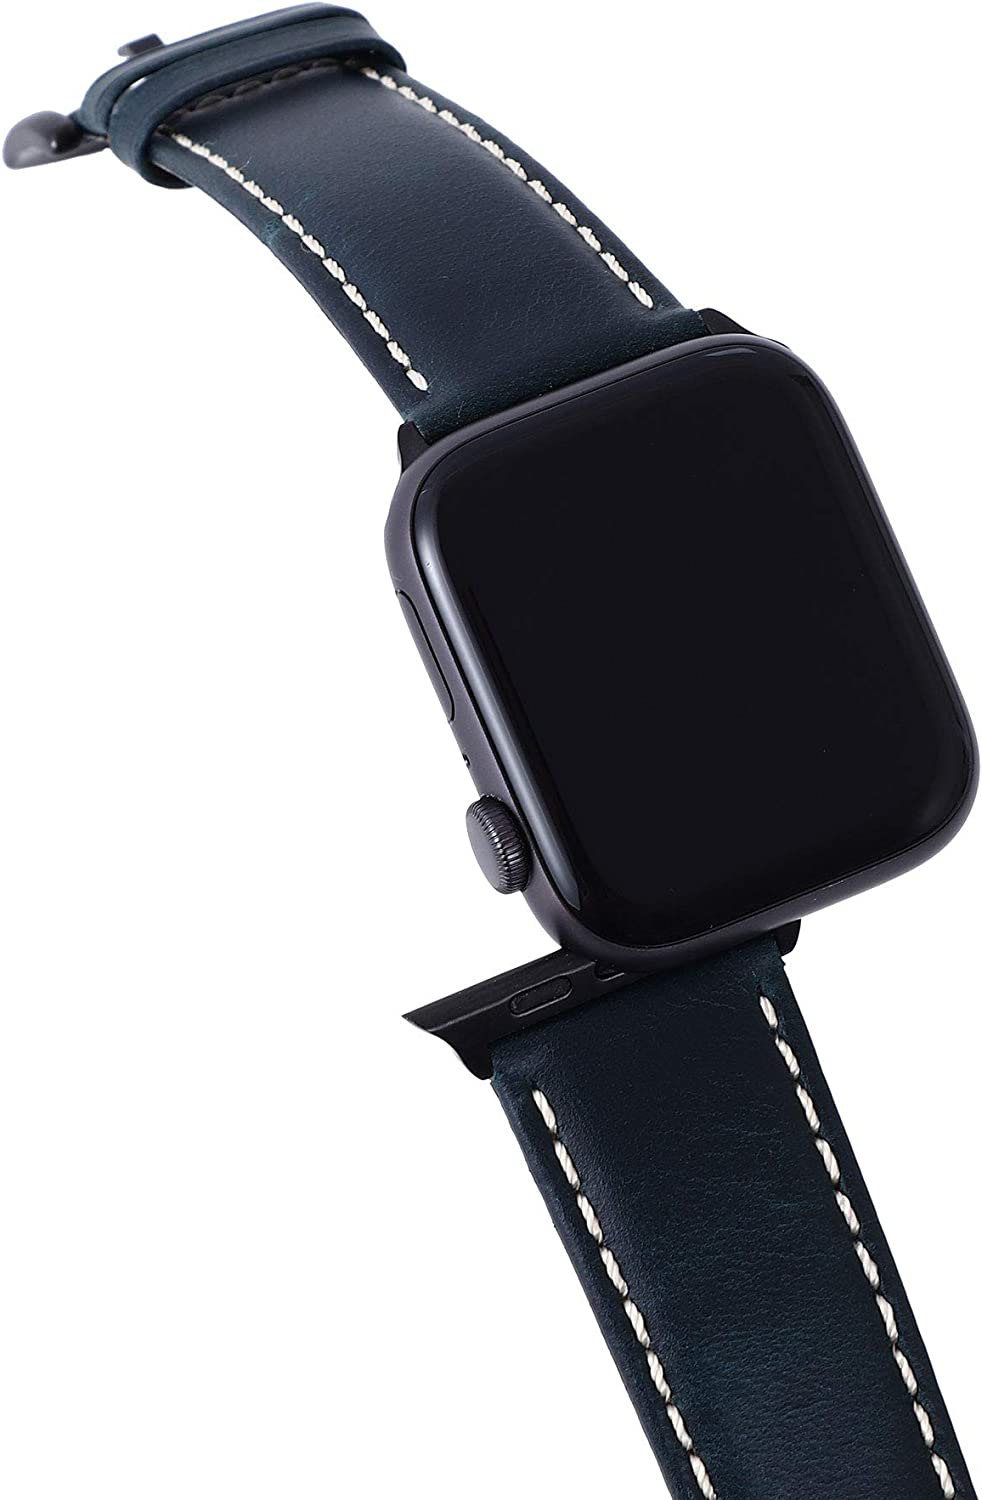 Retro Discoloured Leather Bands for Apple Watch Band 44mm 42mm for Men, Sports Replacement Strap Compatible with iWatch SE Series 6 5 4 3 2 1